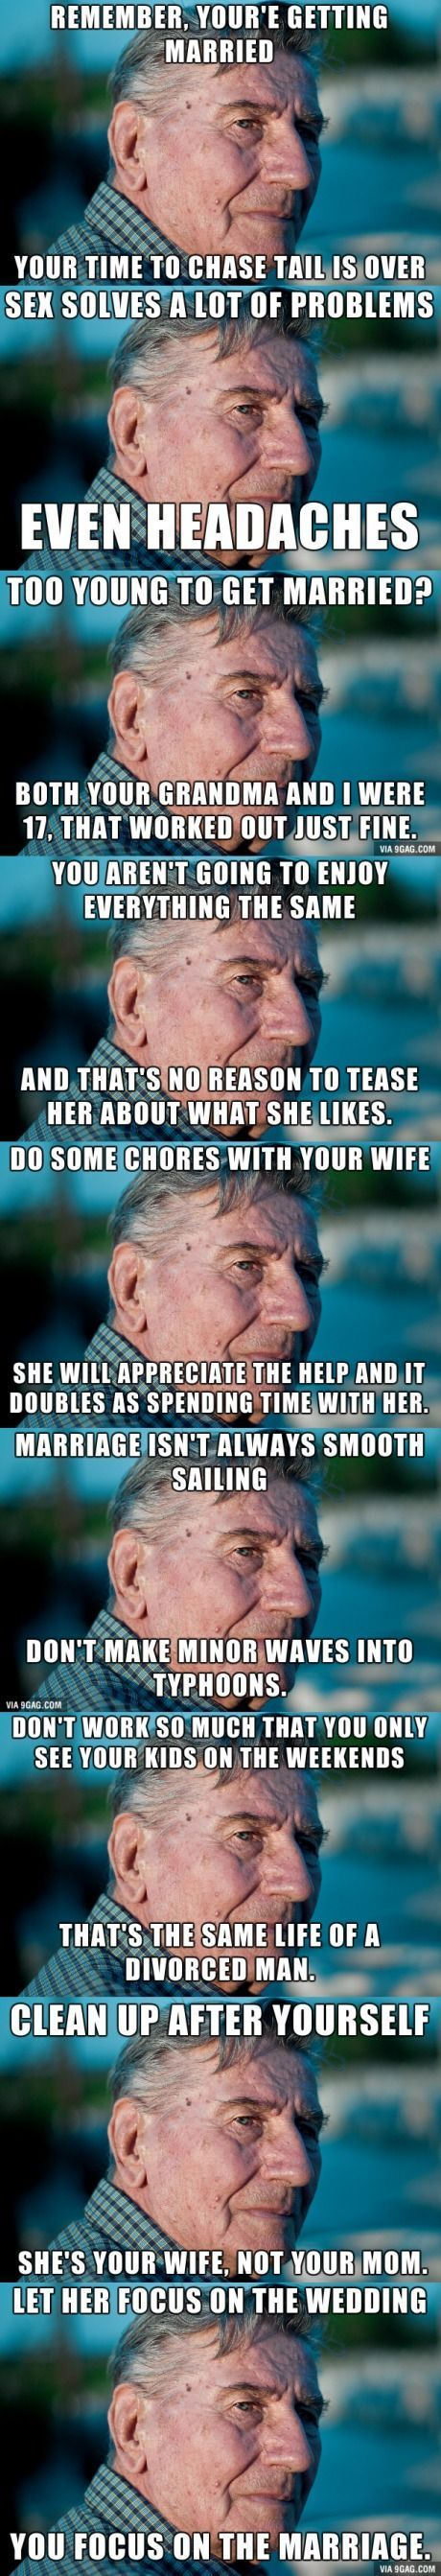 Best Marriage Advice